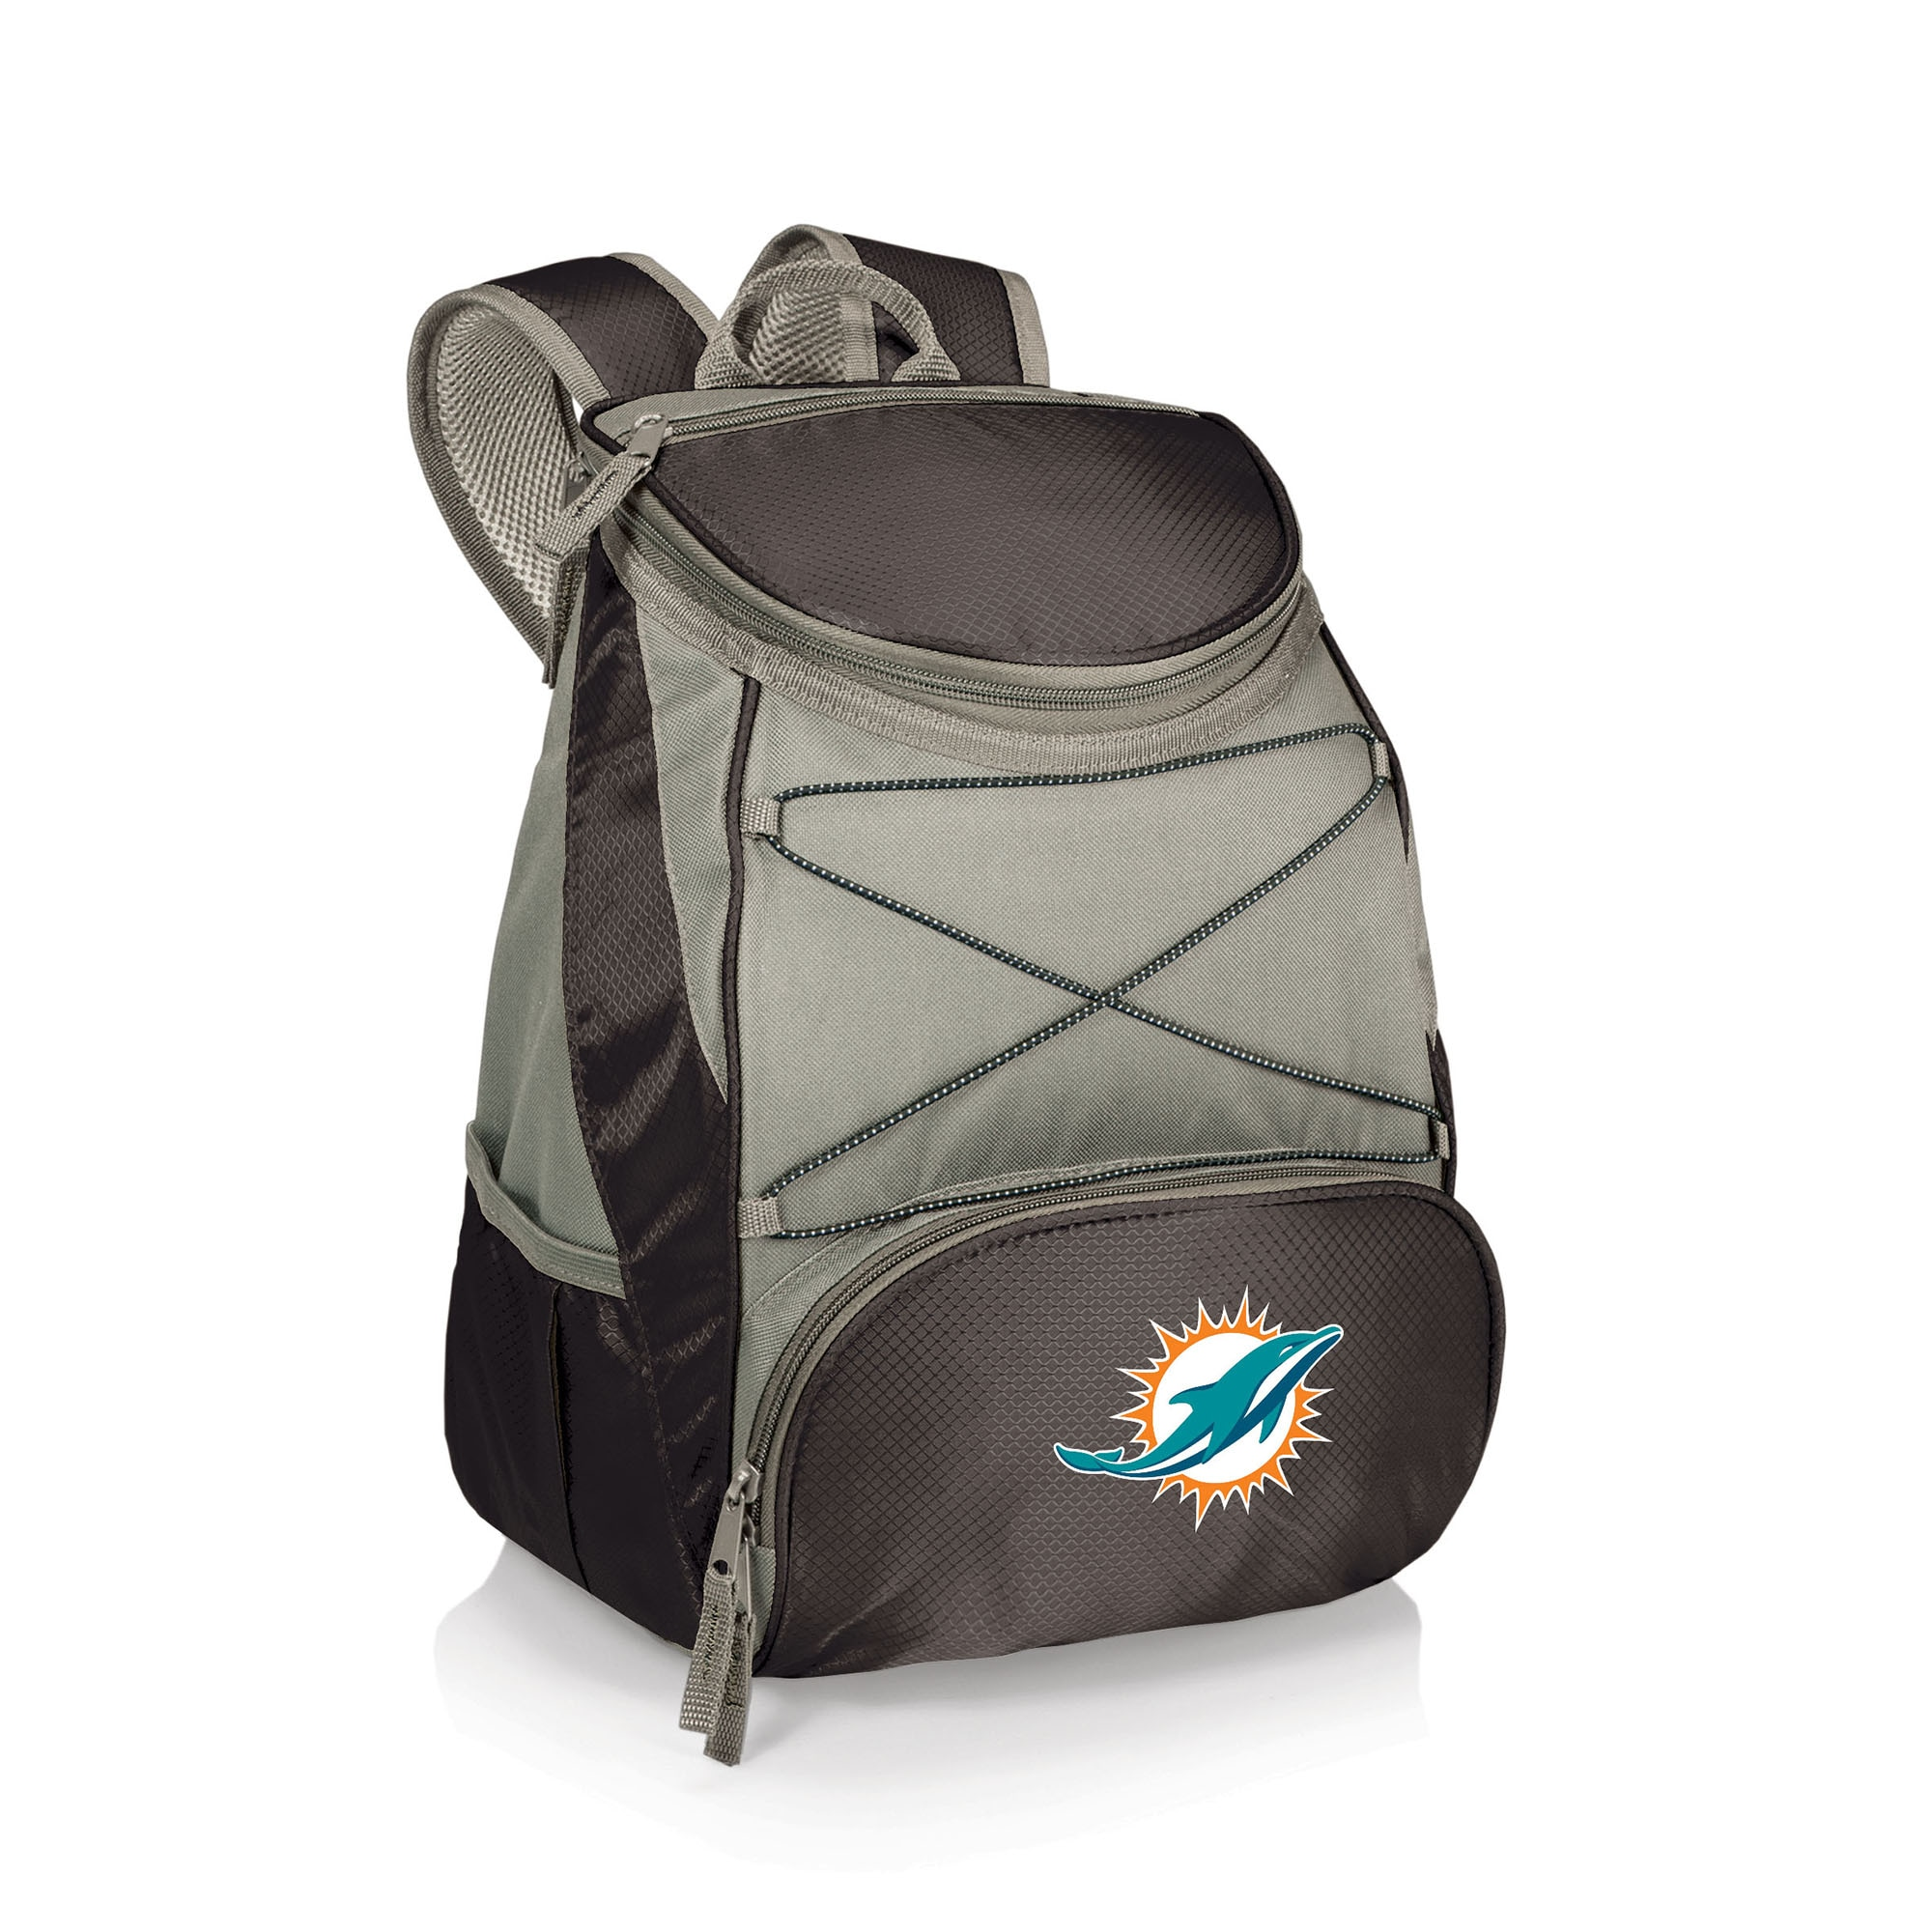 Miami Dolphins PTX Backpack Cooler - Black